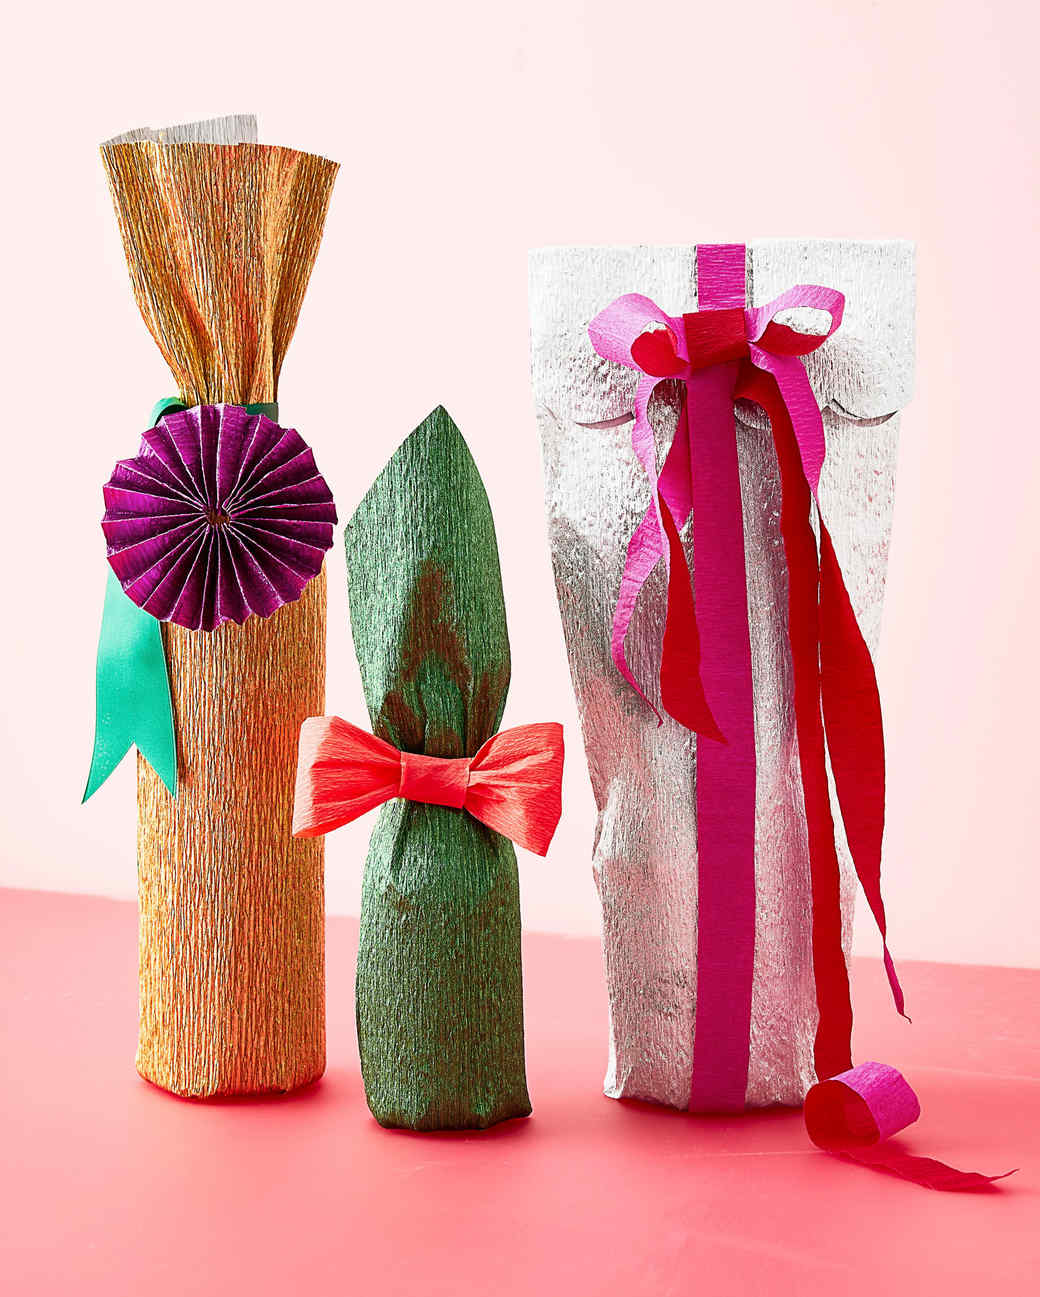 crepe paper gift wrapping bottles